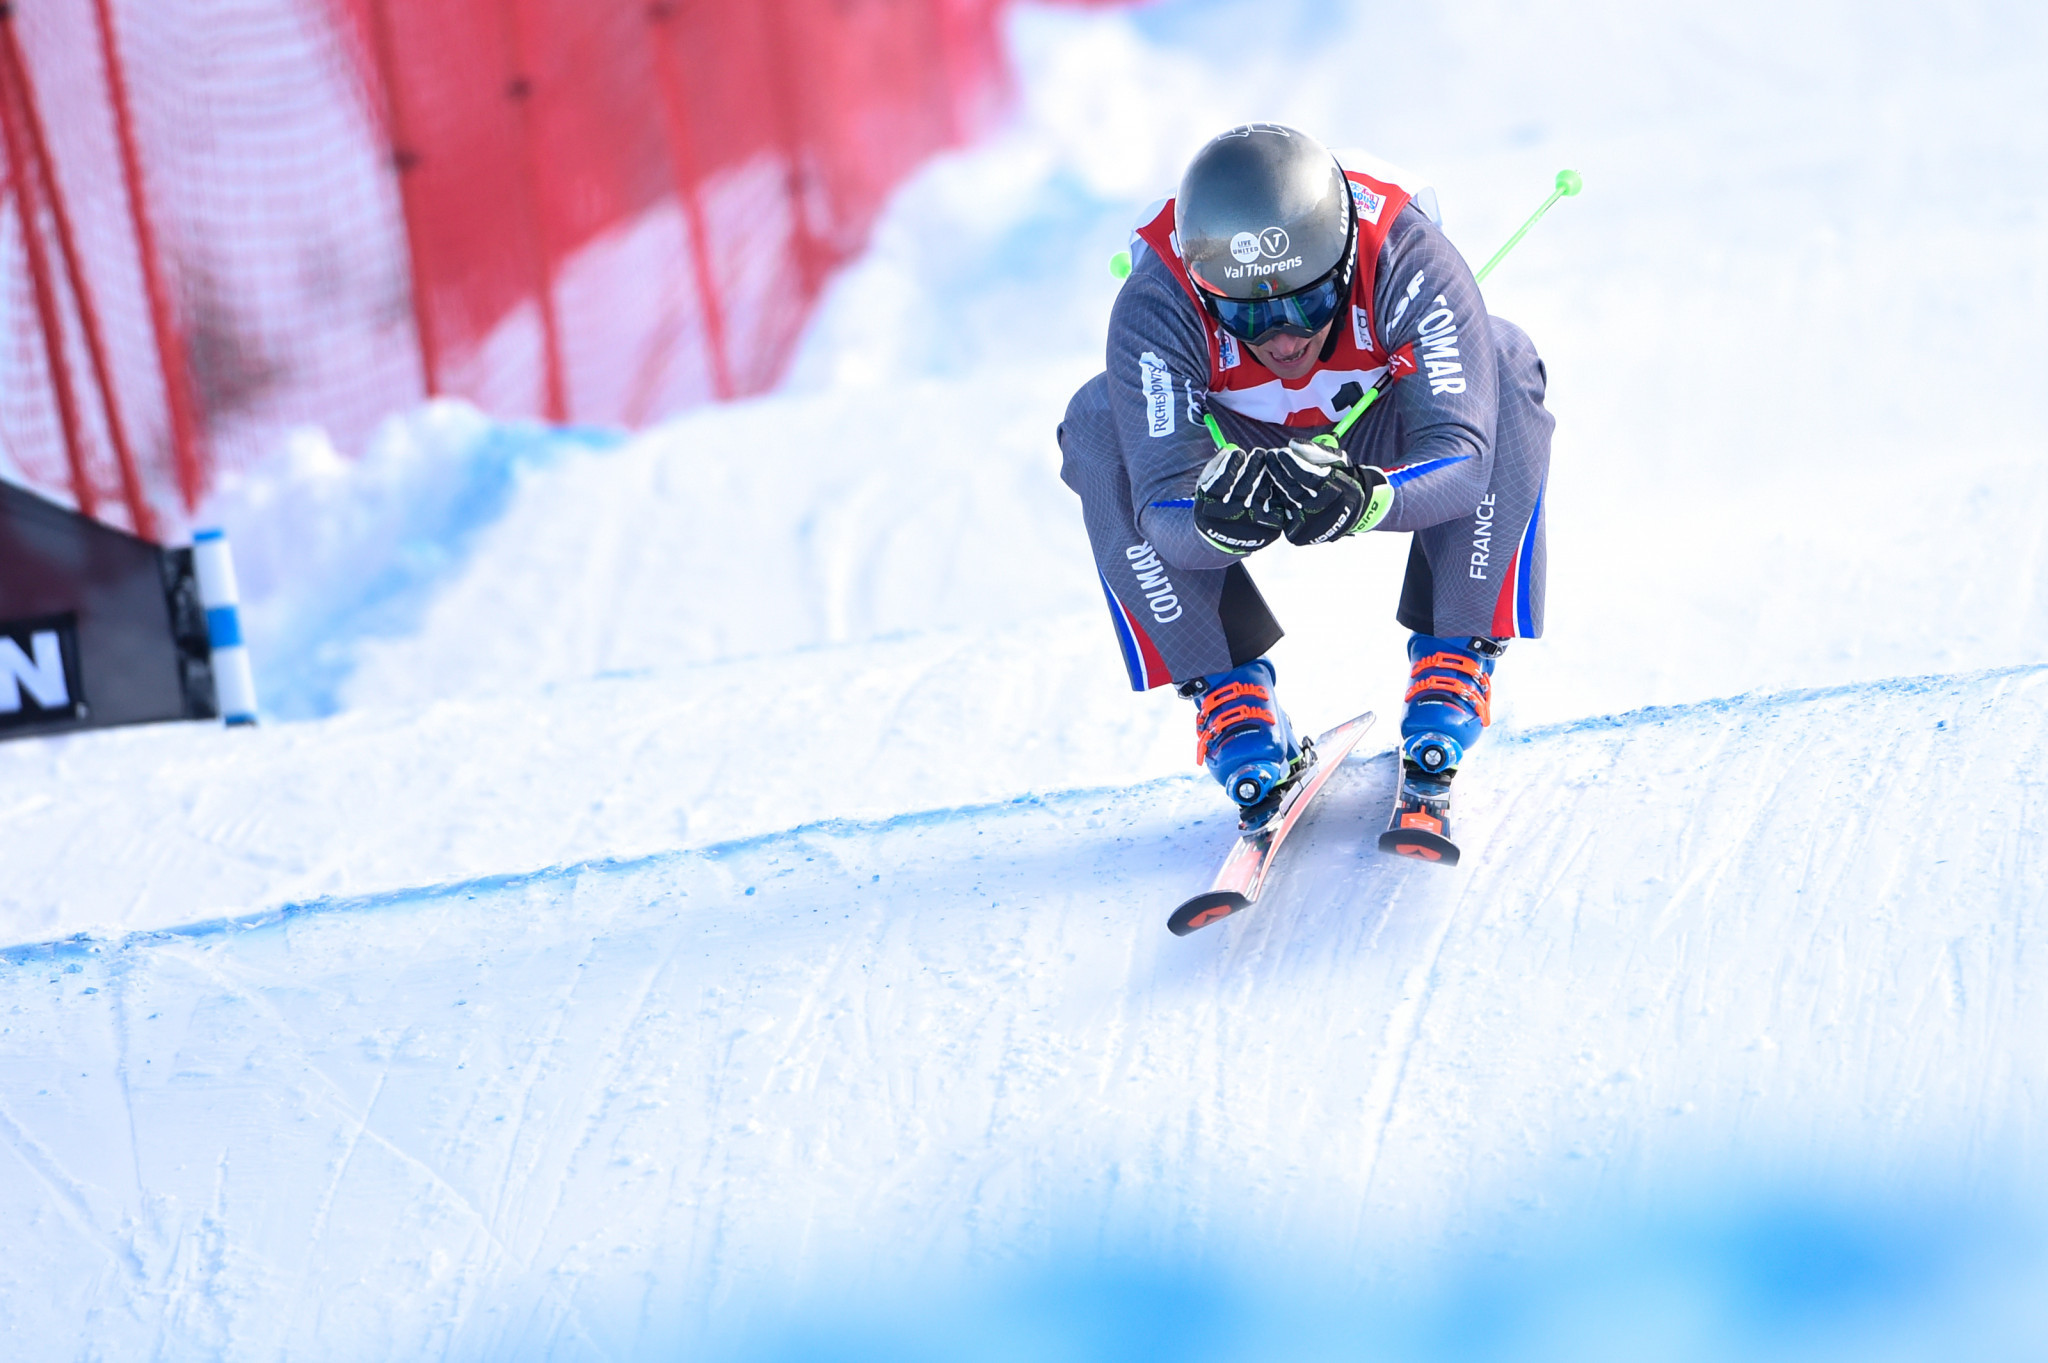 Chapuis returns to form to win Ski Cross World Cup in Idre Fjäll